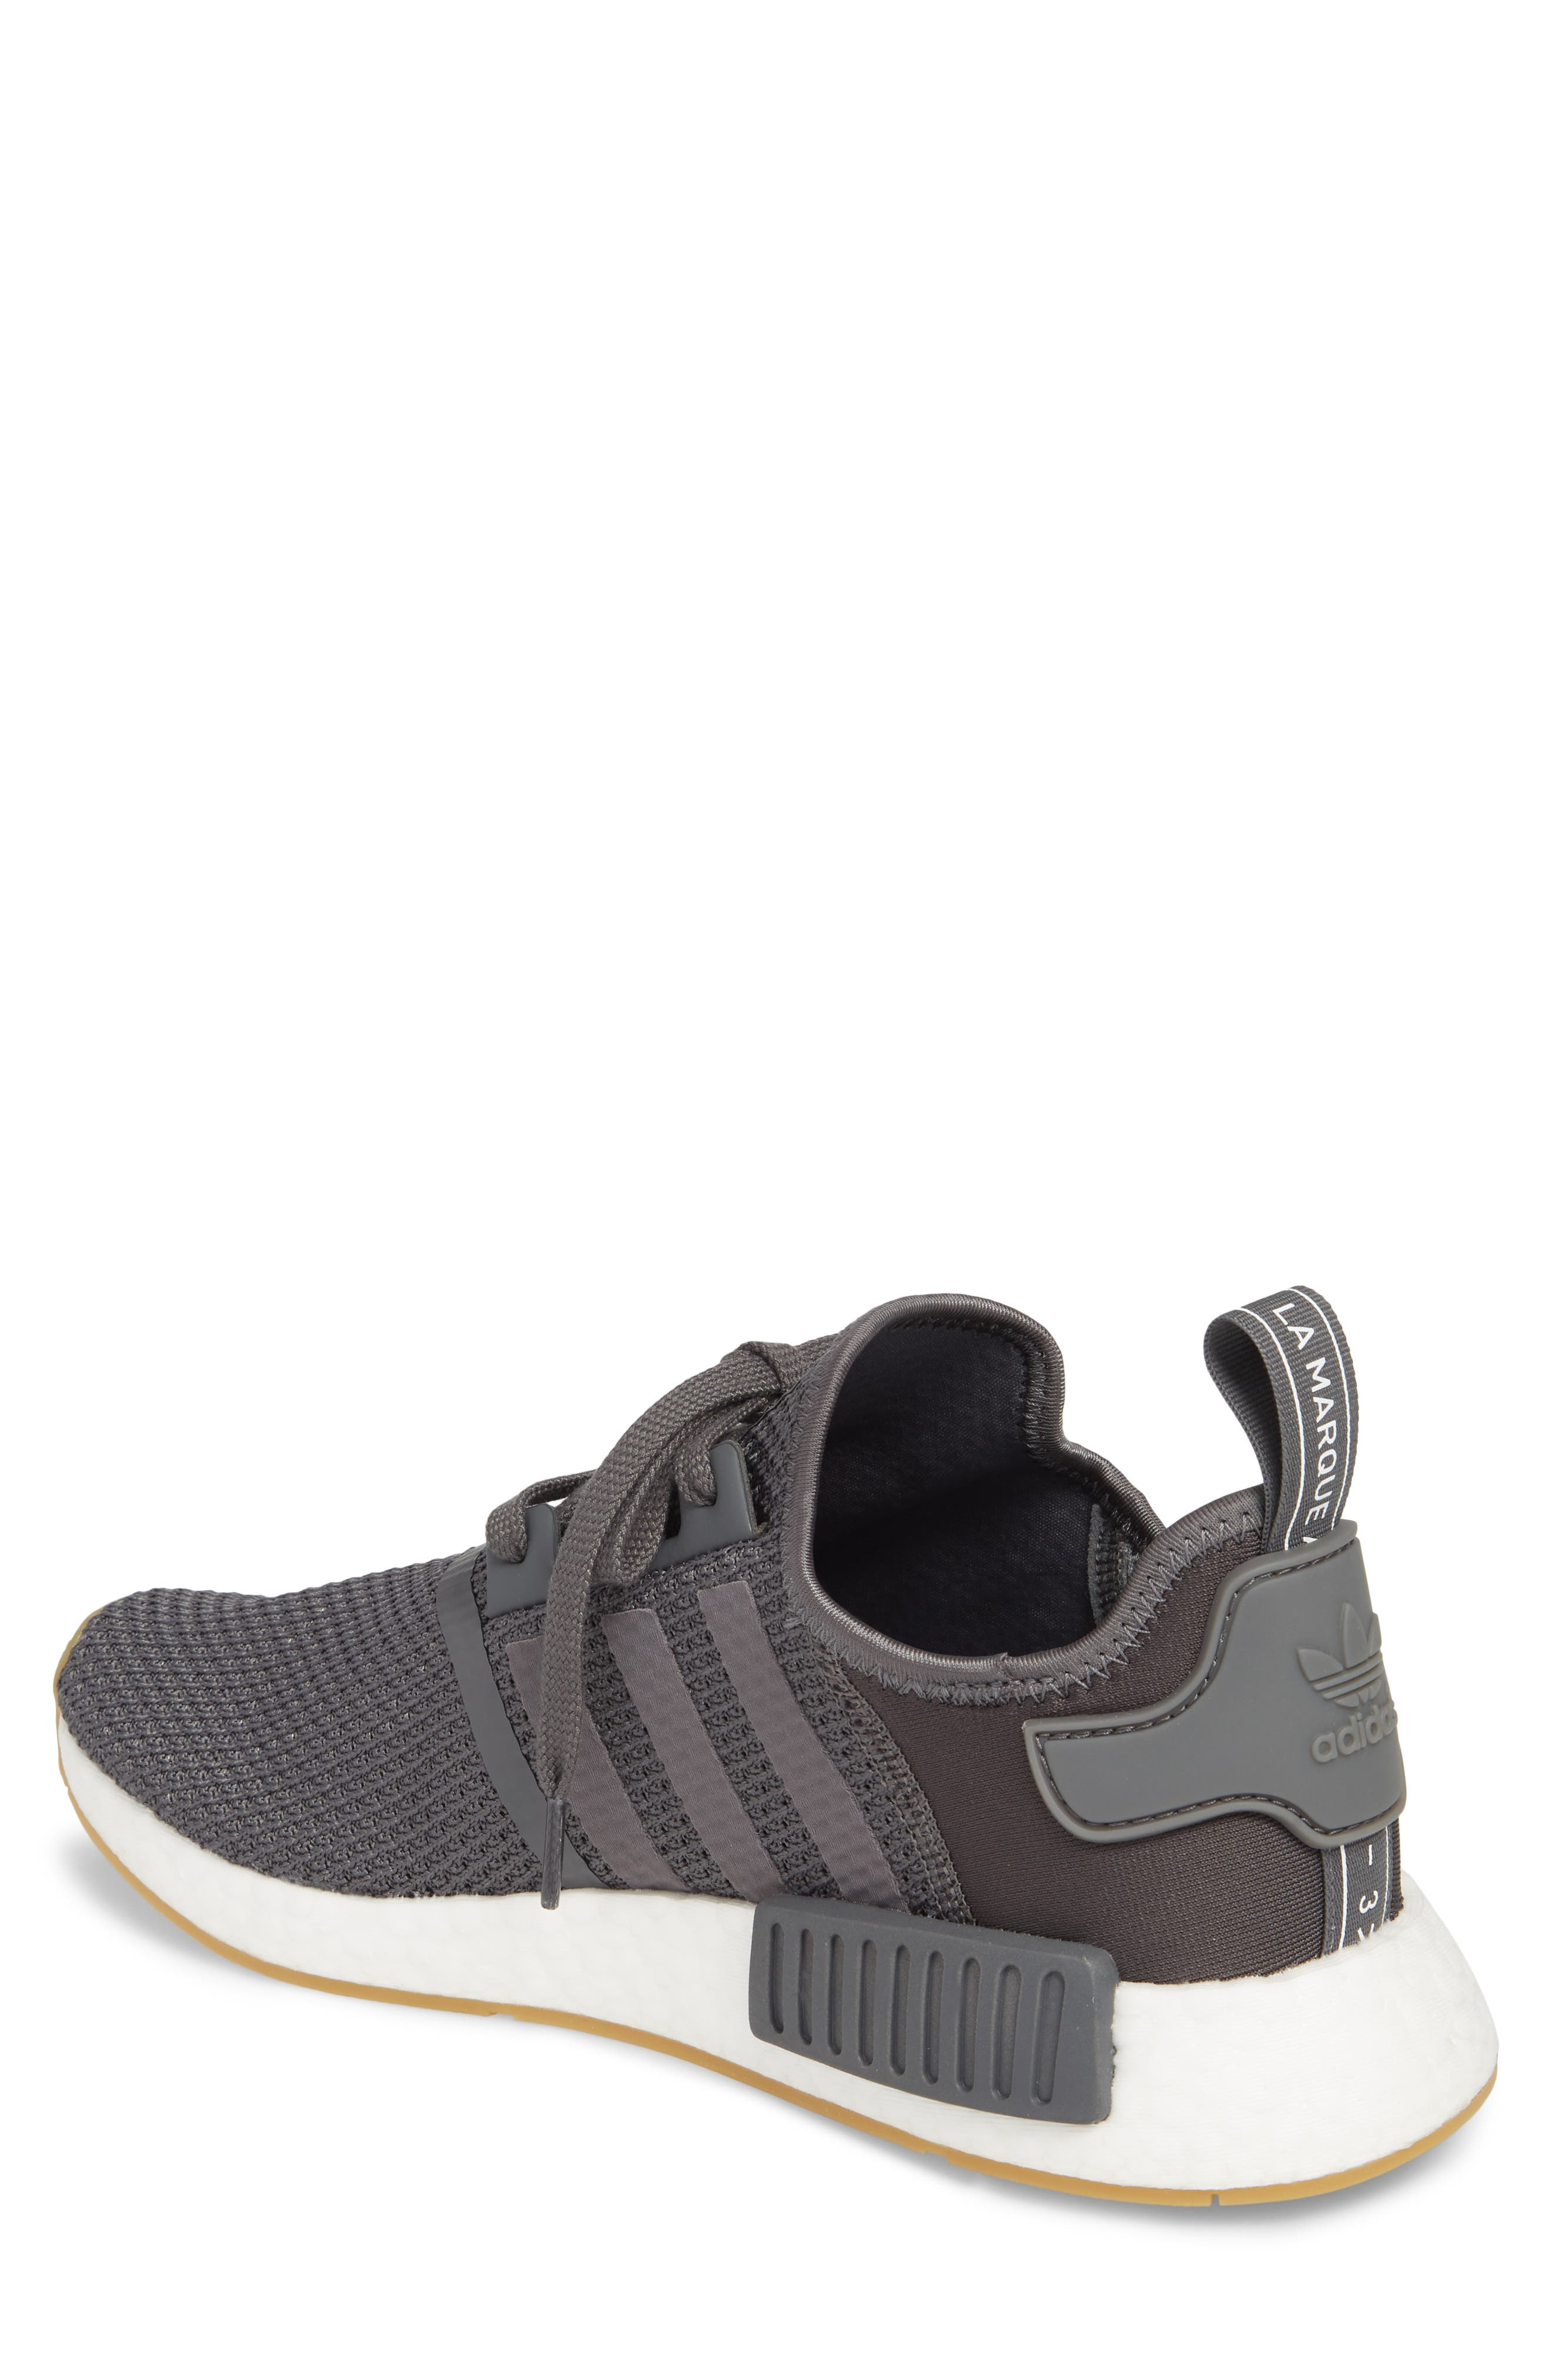 Originals NMD R1 Sneaker,                             Alternate thumbnail 2, color,                             Grey/ Black